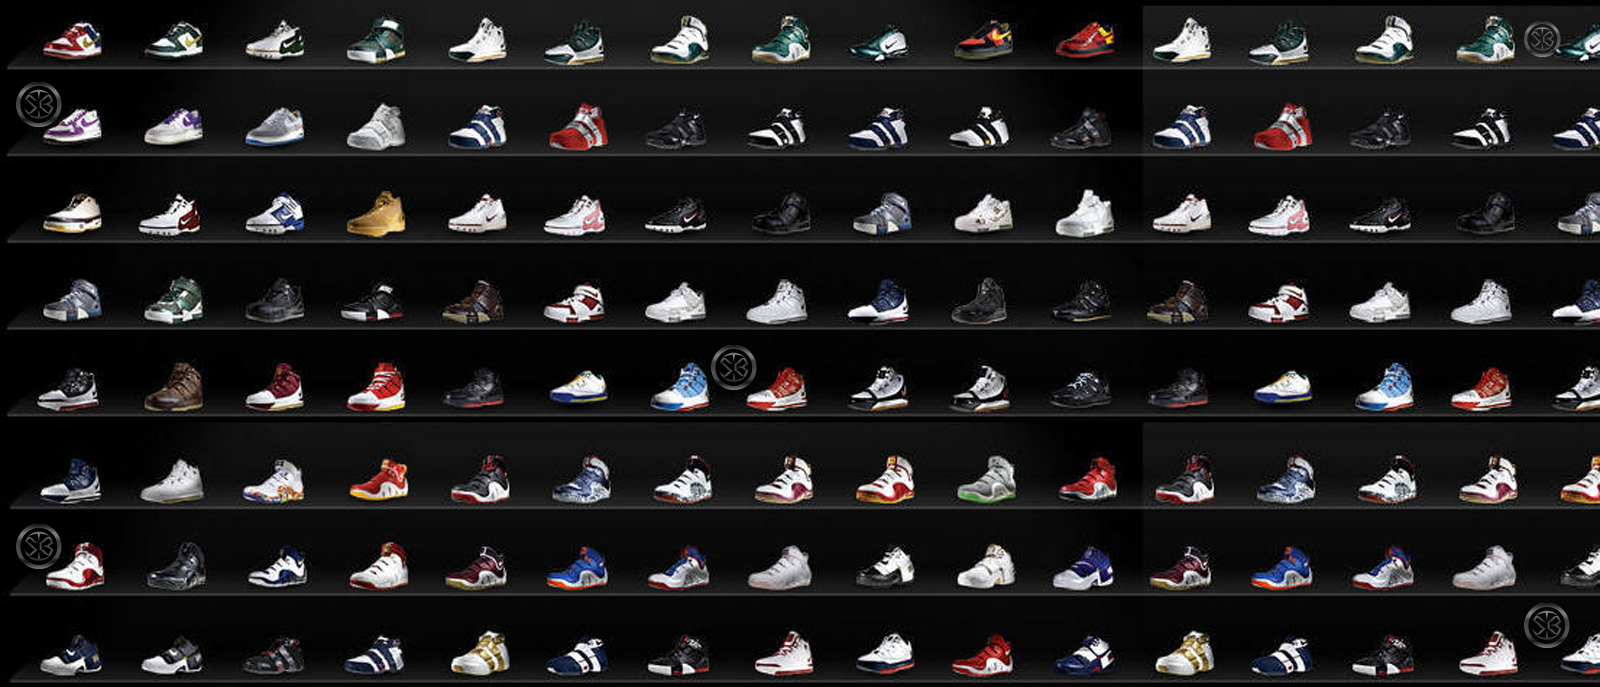 Recommended: Sneakers Pictures 22/08/2013, Sylvester Santucci